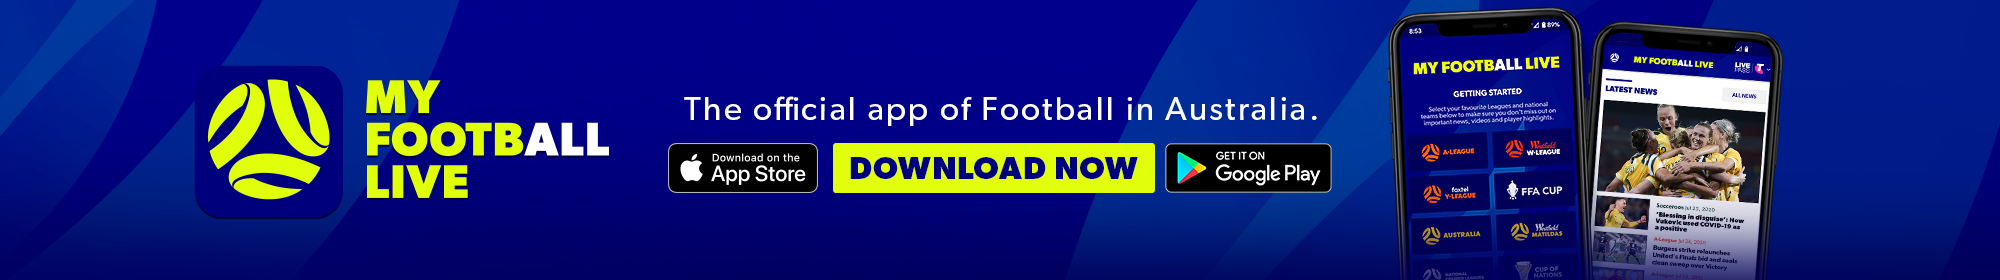 My Football Live app thin banner 2020